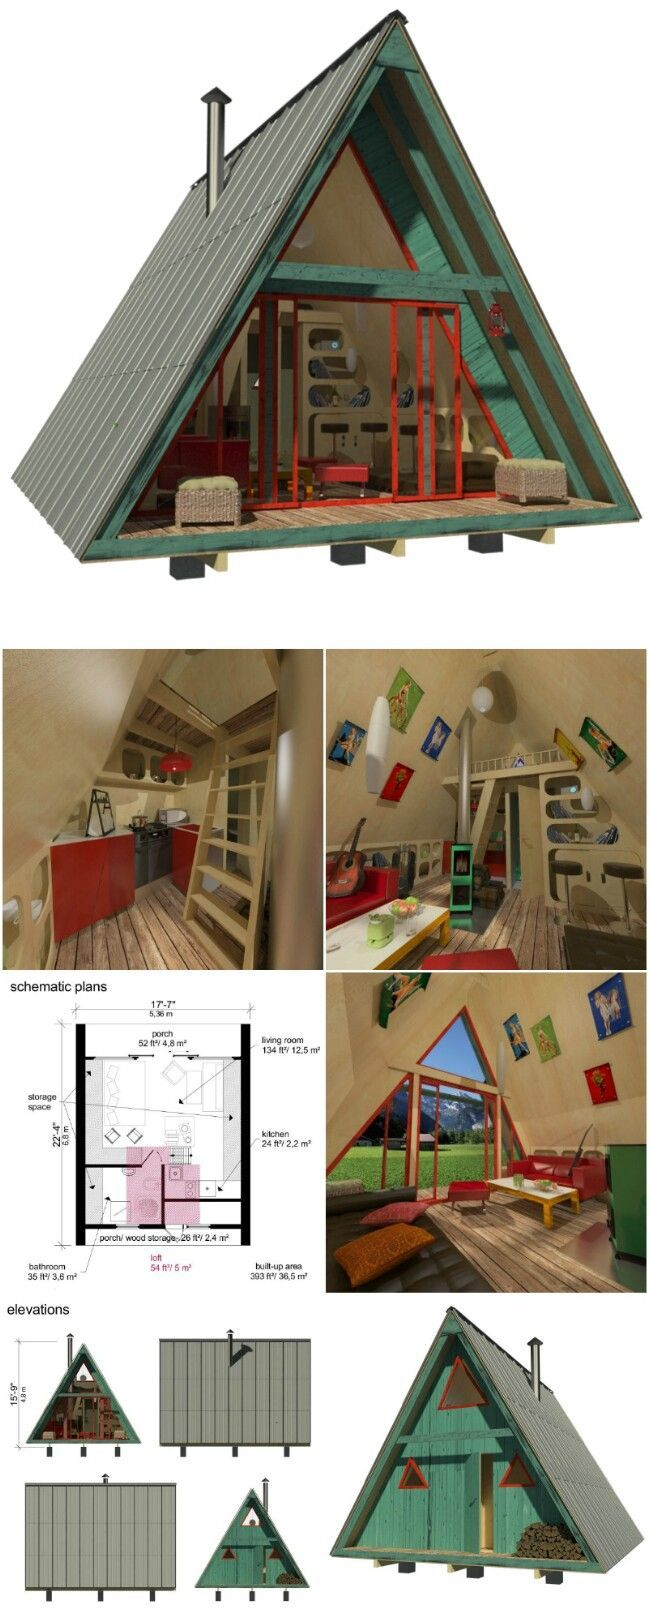 25 Plans to Build Your Own Fully